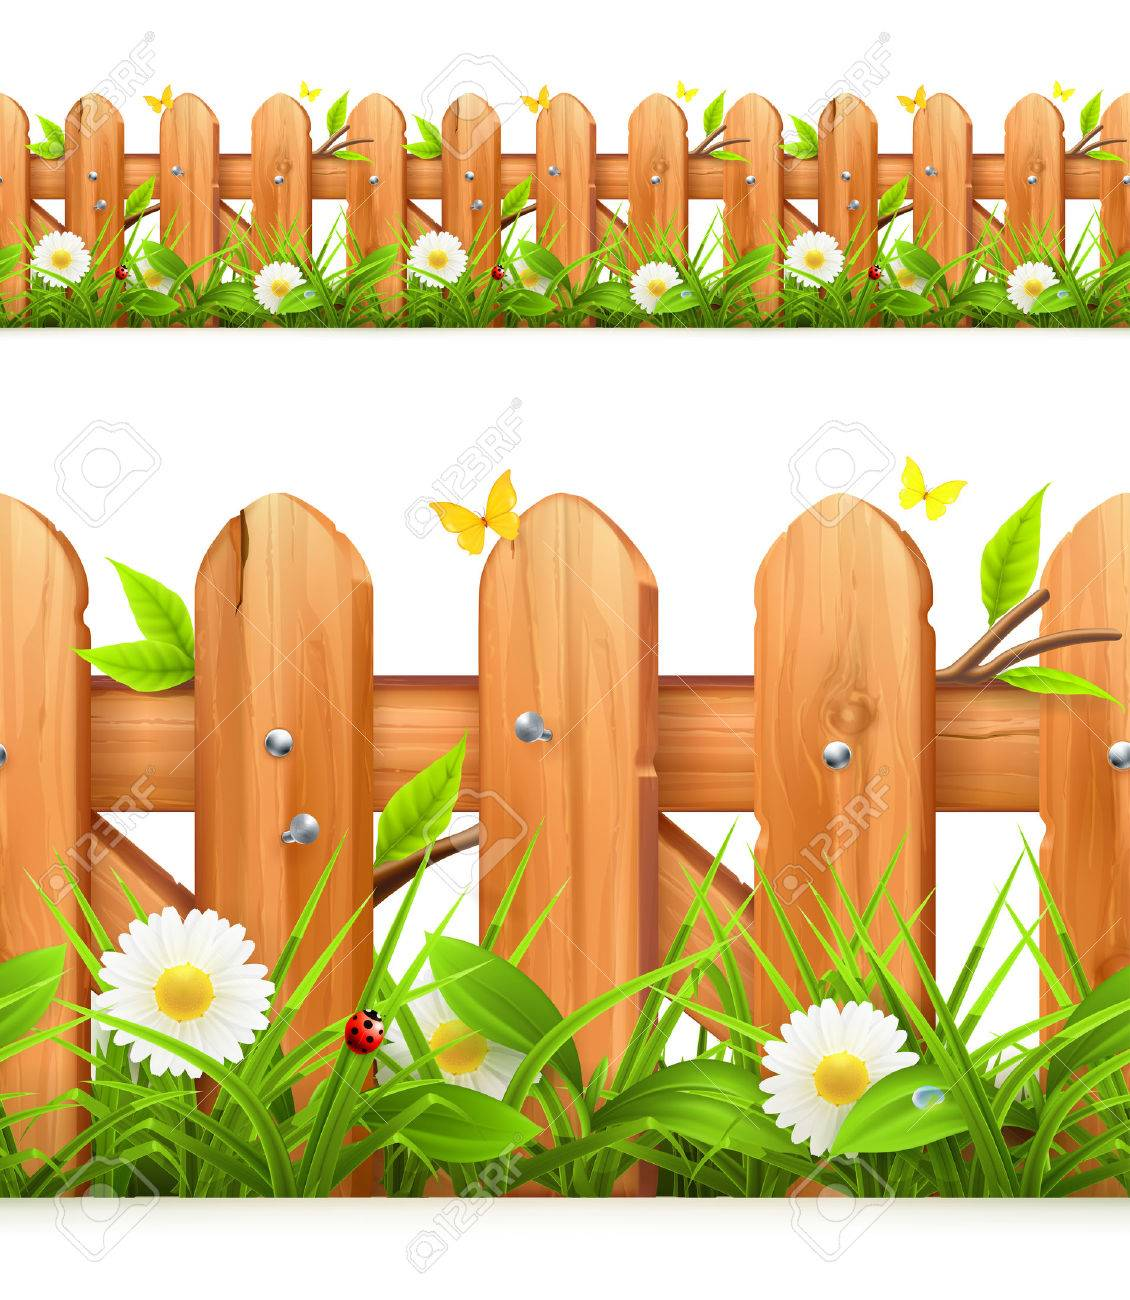 Grass and wooden fence seamless border, illustration.